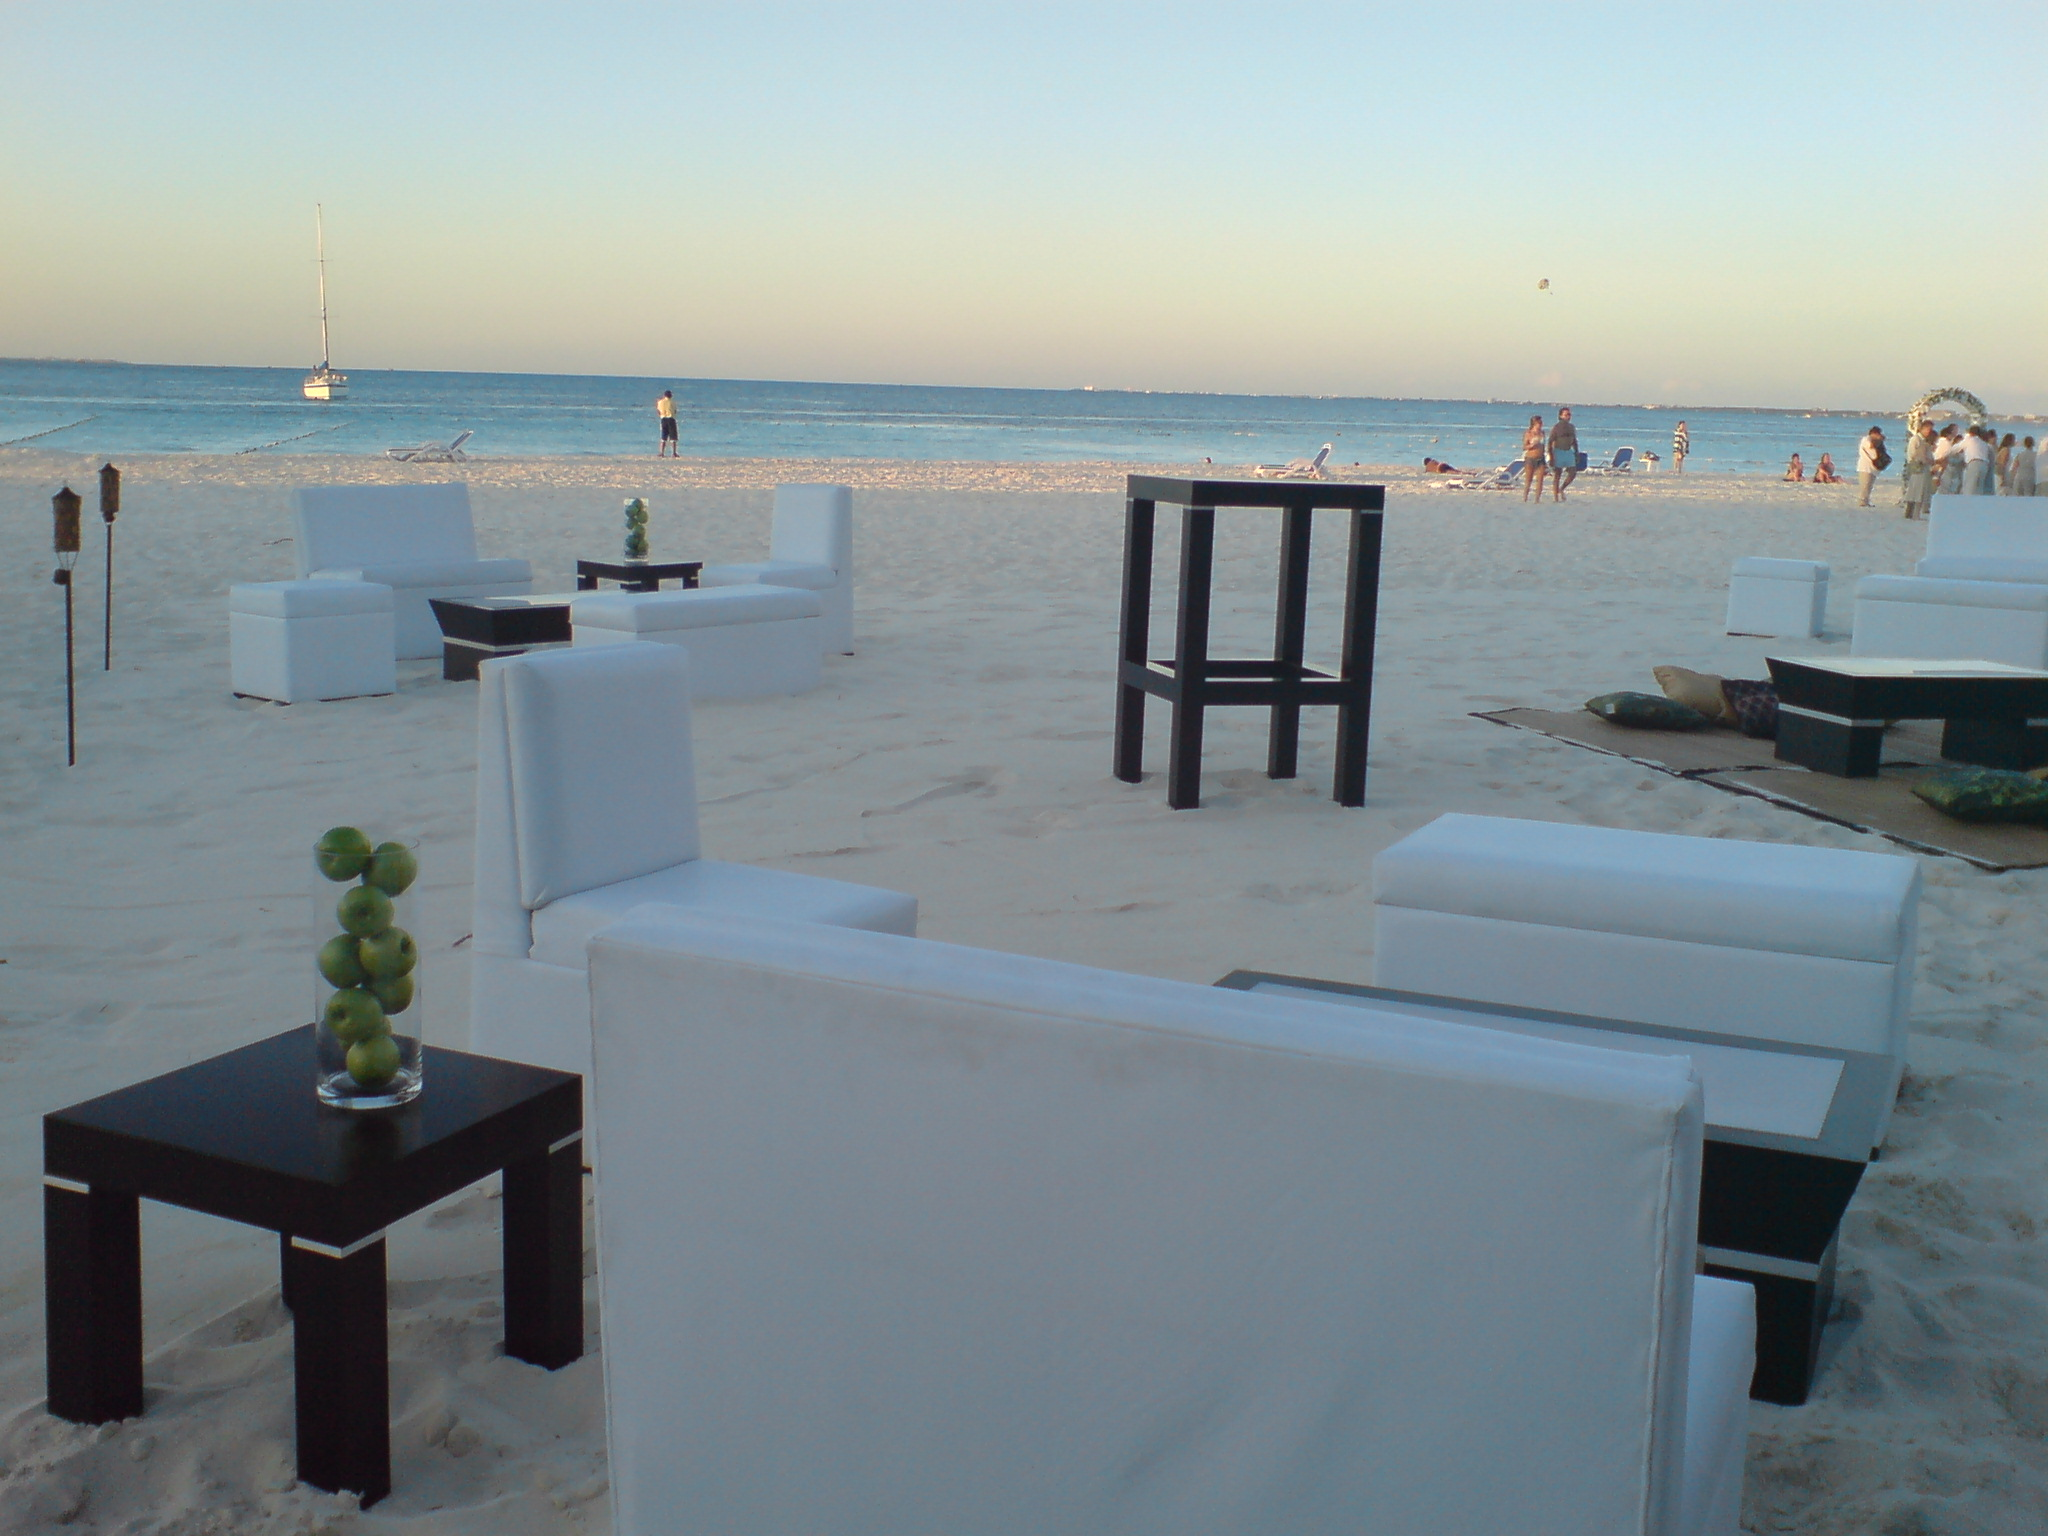 Ambiance Villas Beach Lounge Set Up